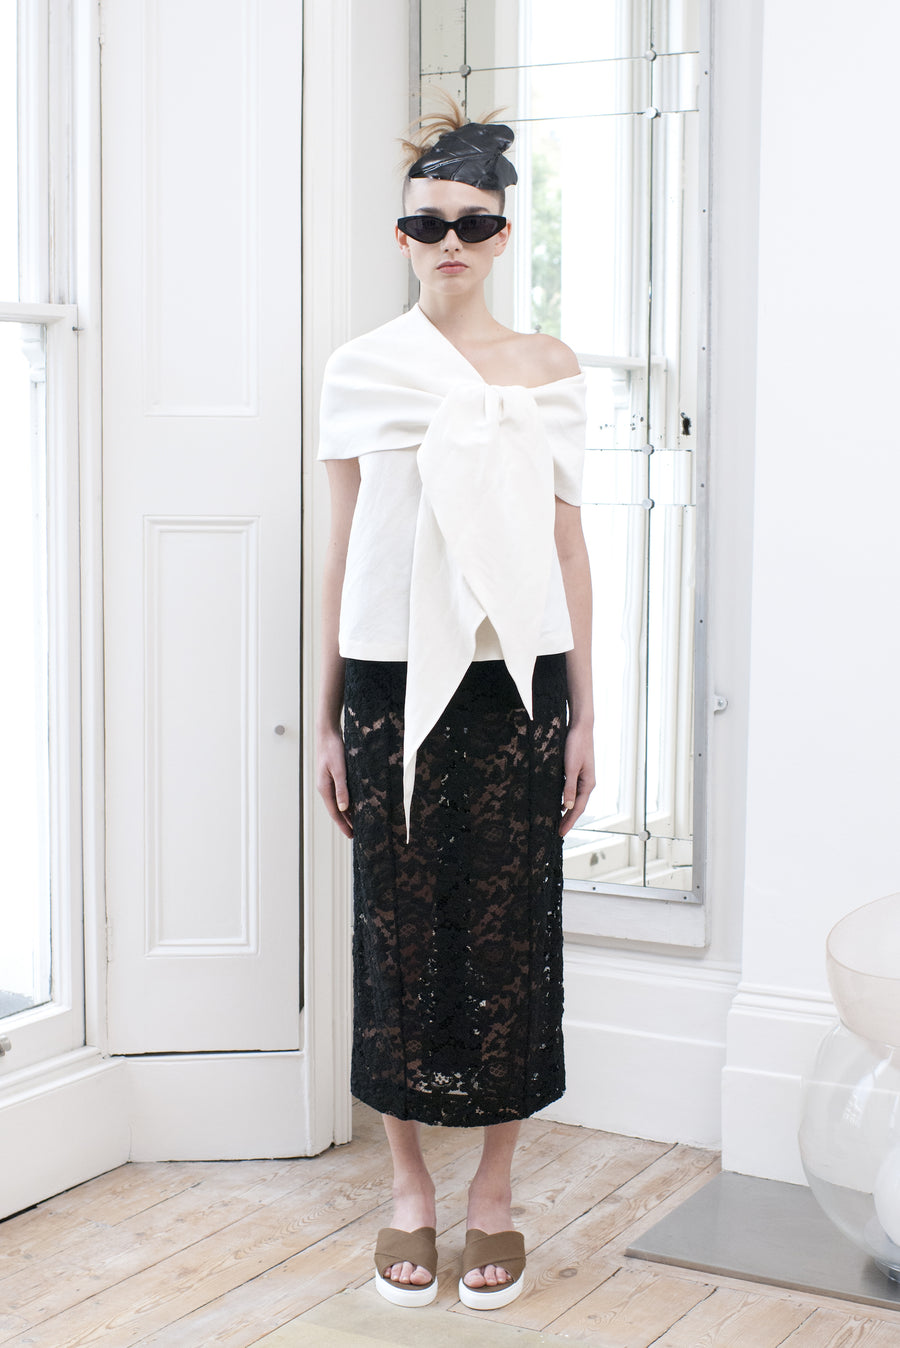 SS2016 / Look 6